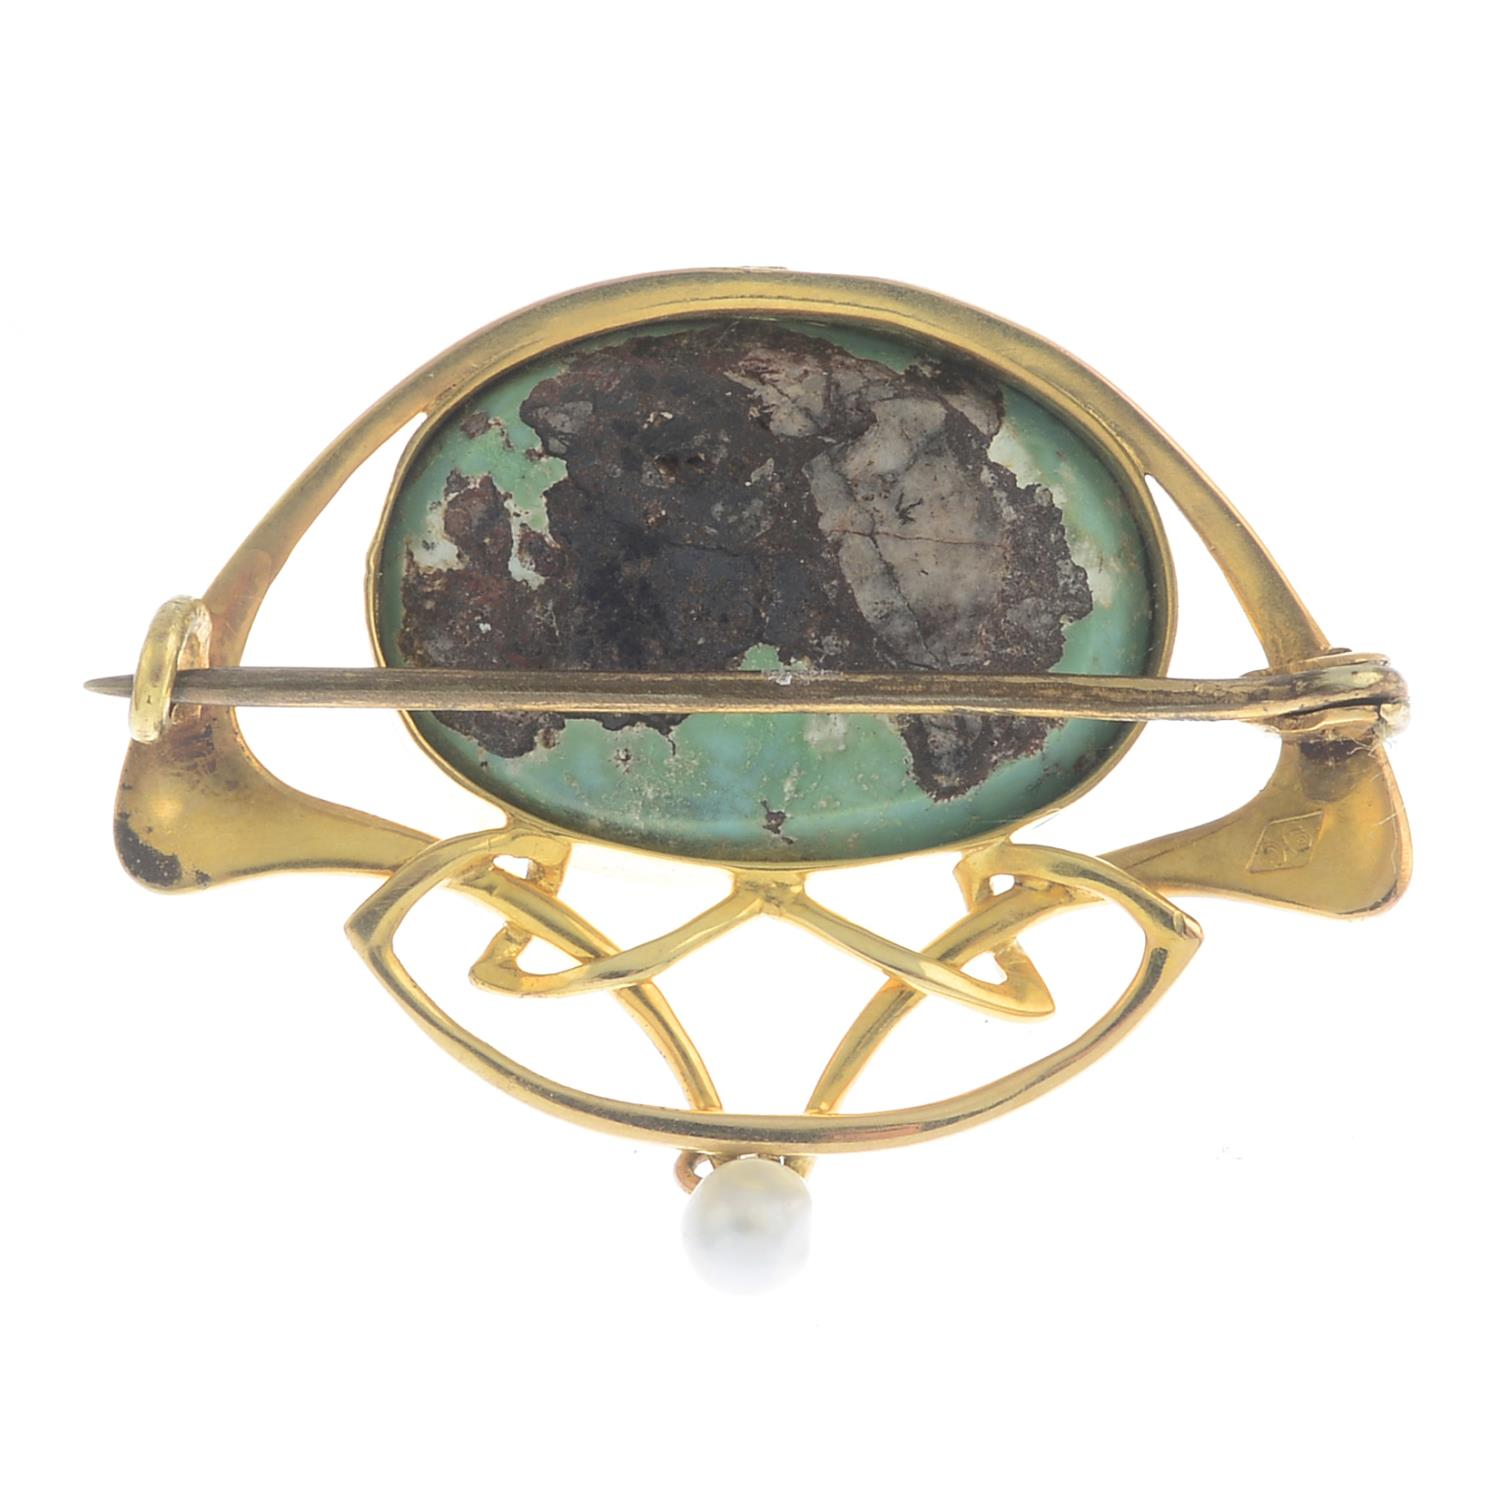 Lot 8 - An Art Nouveau turquoise and pearl brooch.Turquoise calculated weight 15cts,